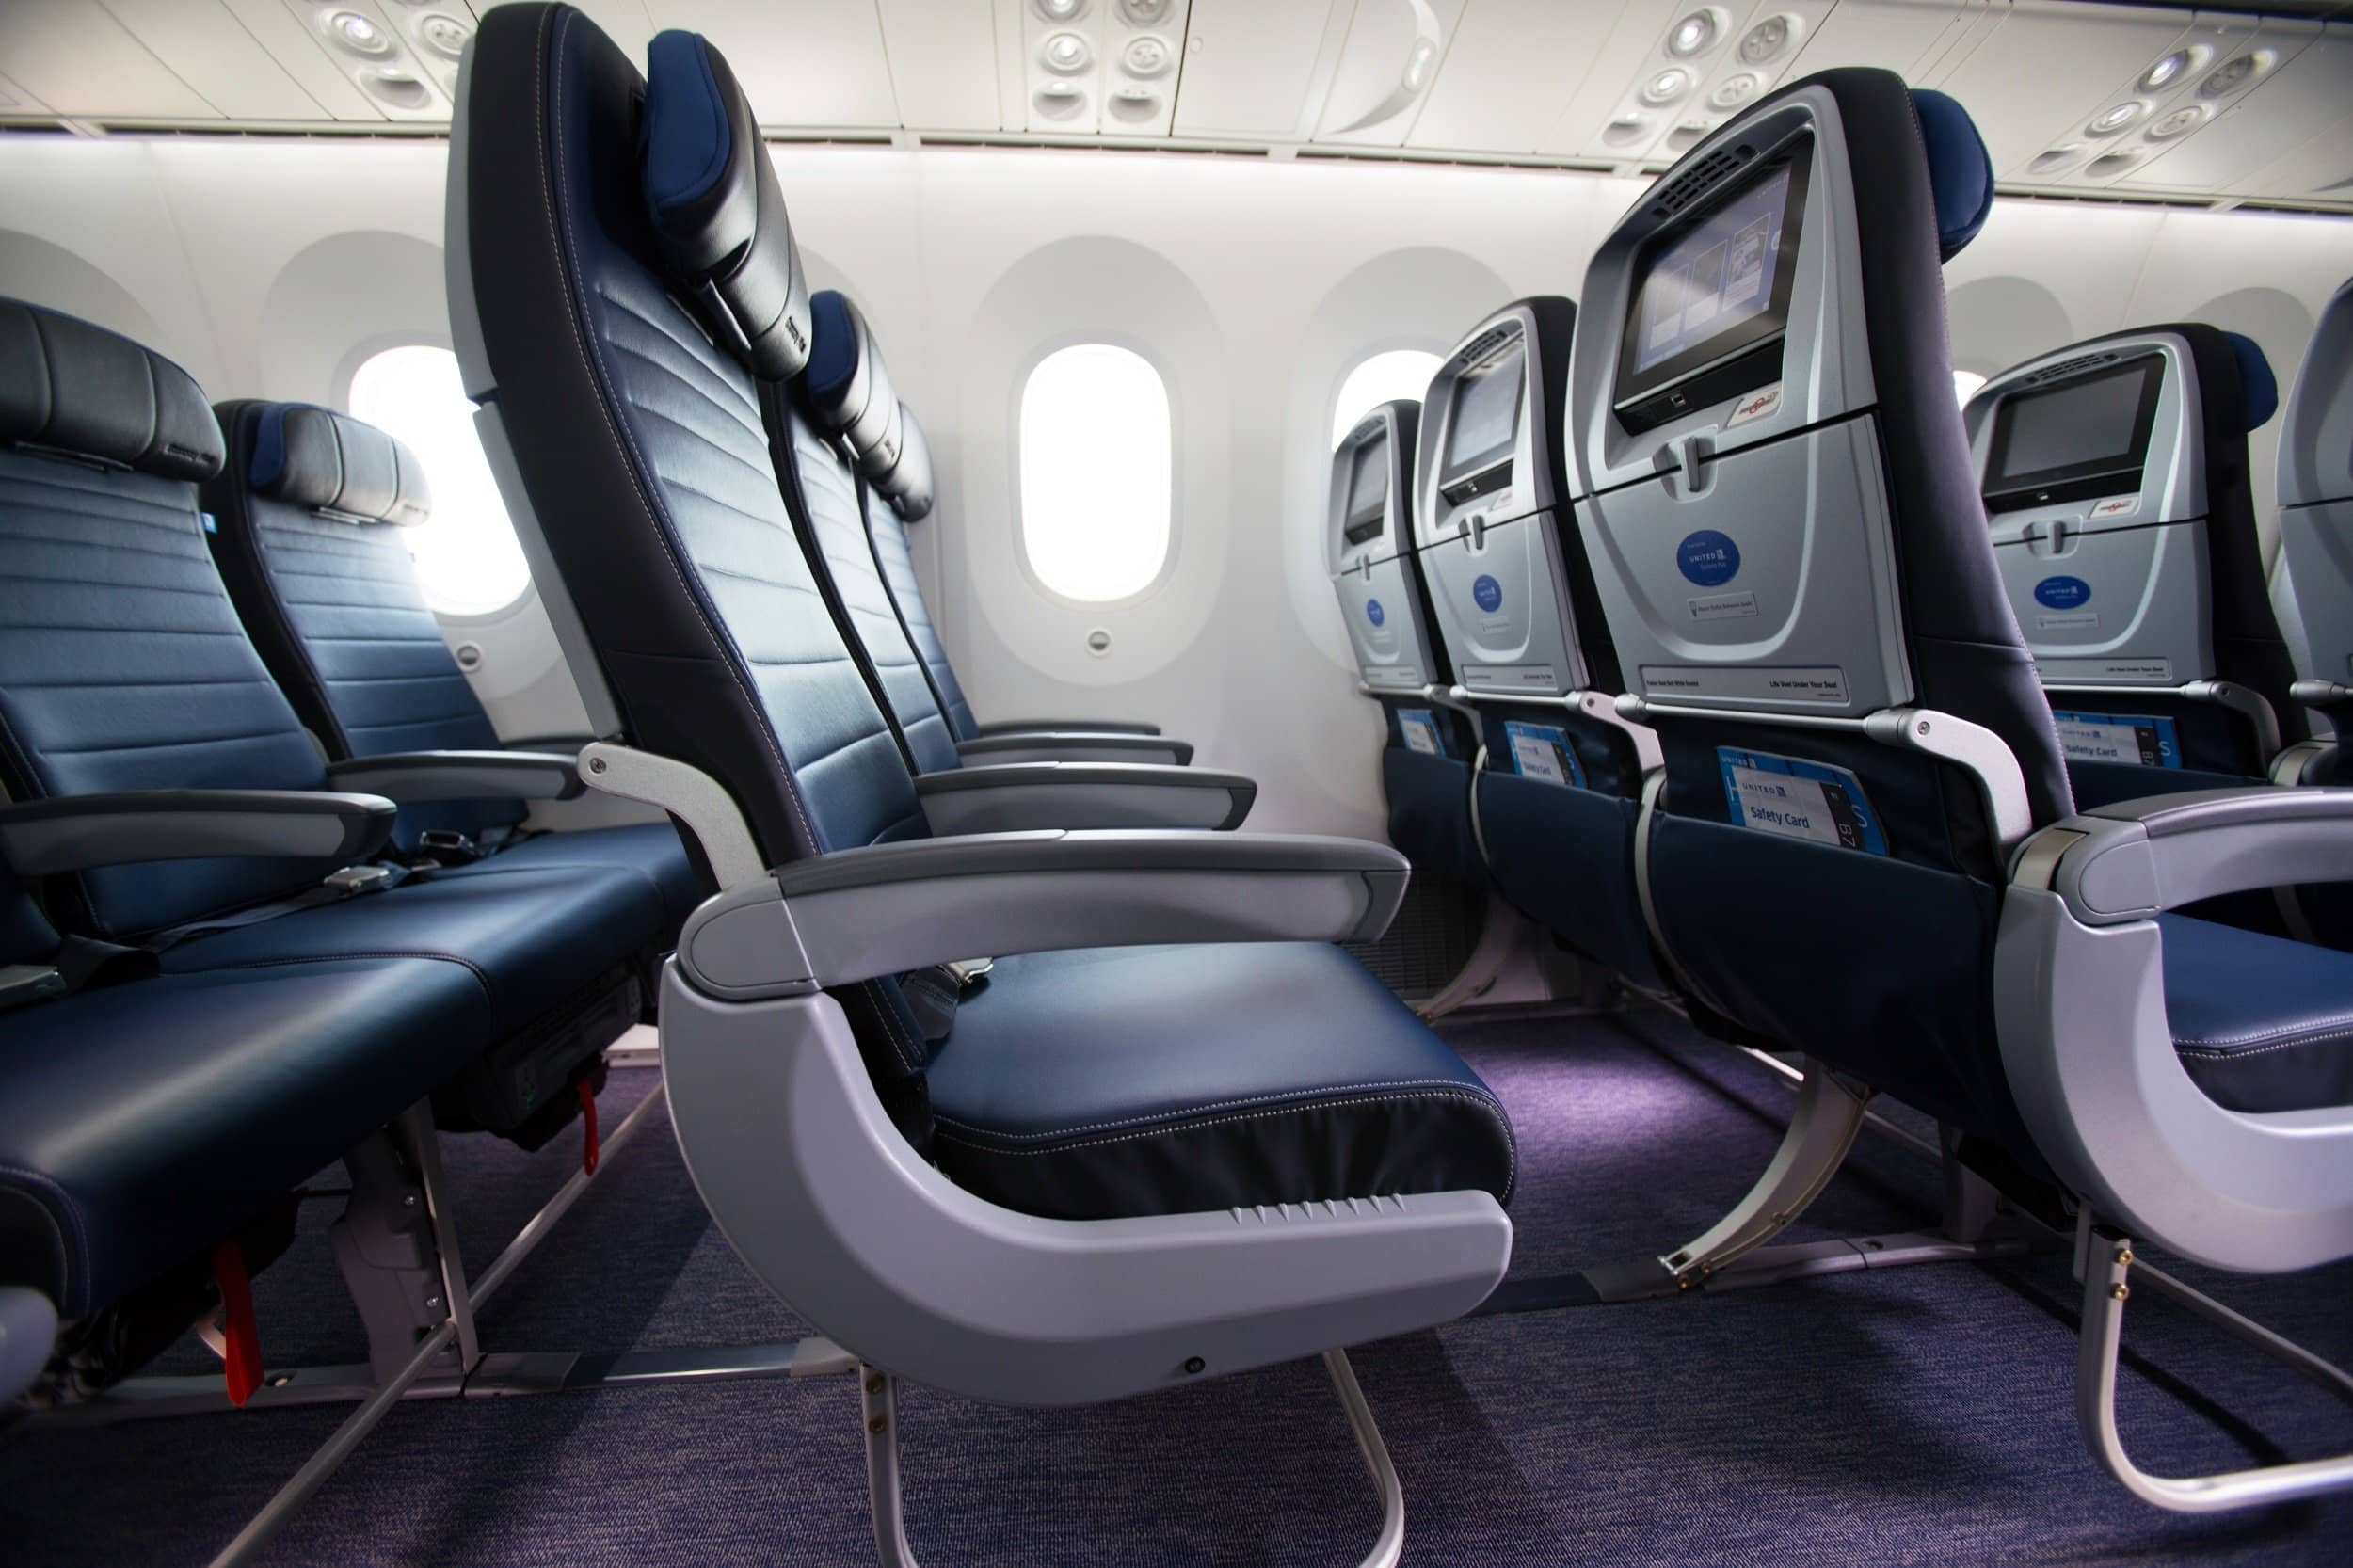 Row of economy seats on a United Airlines plane